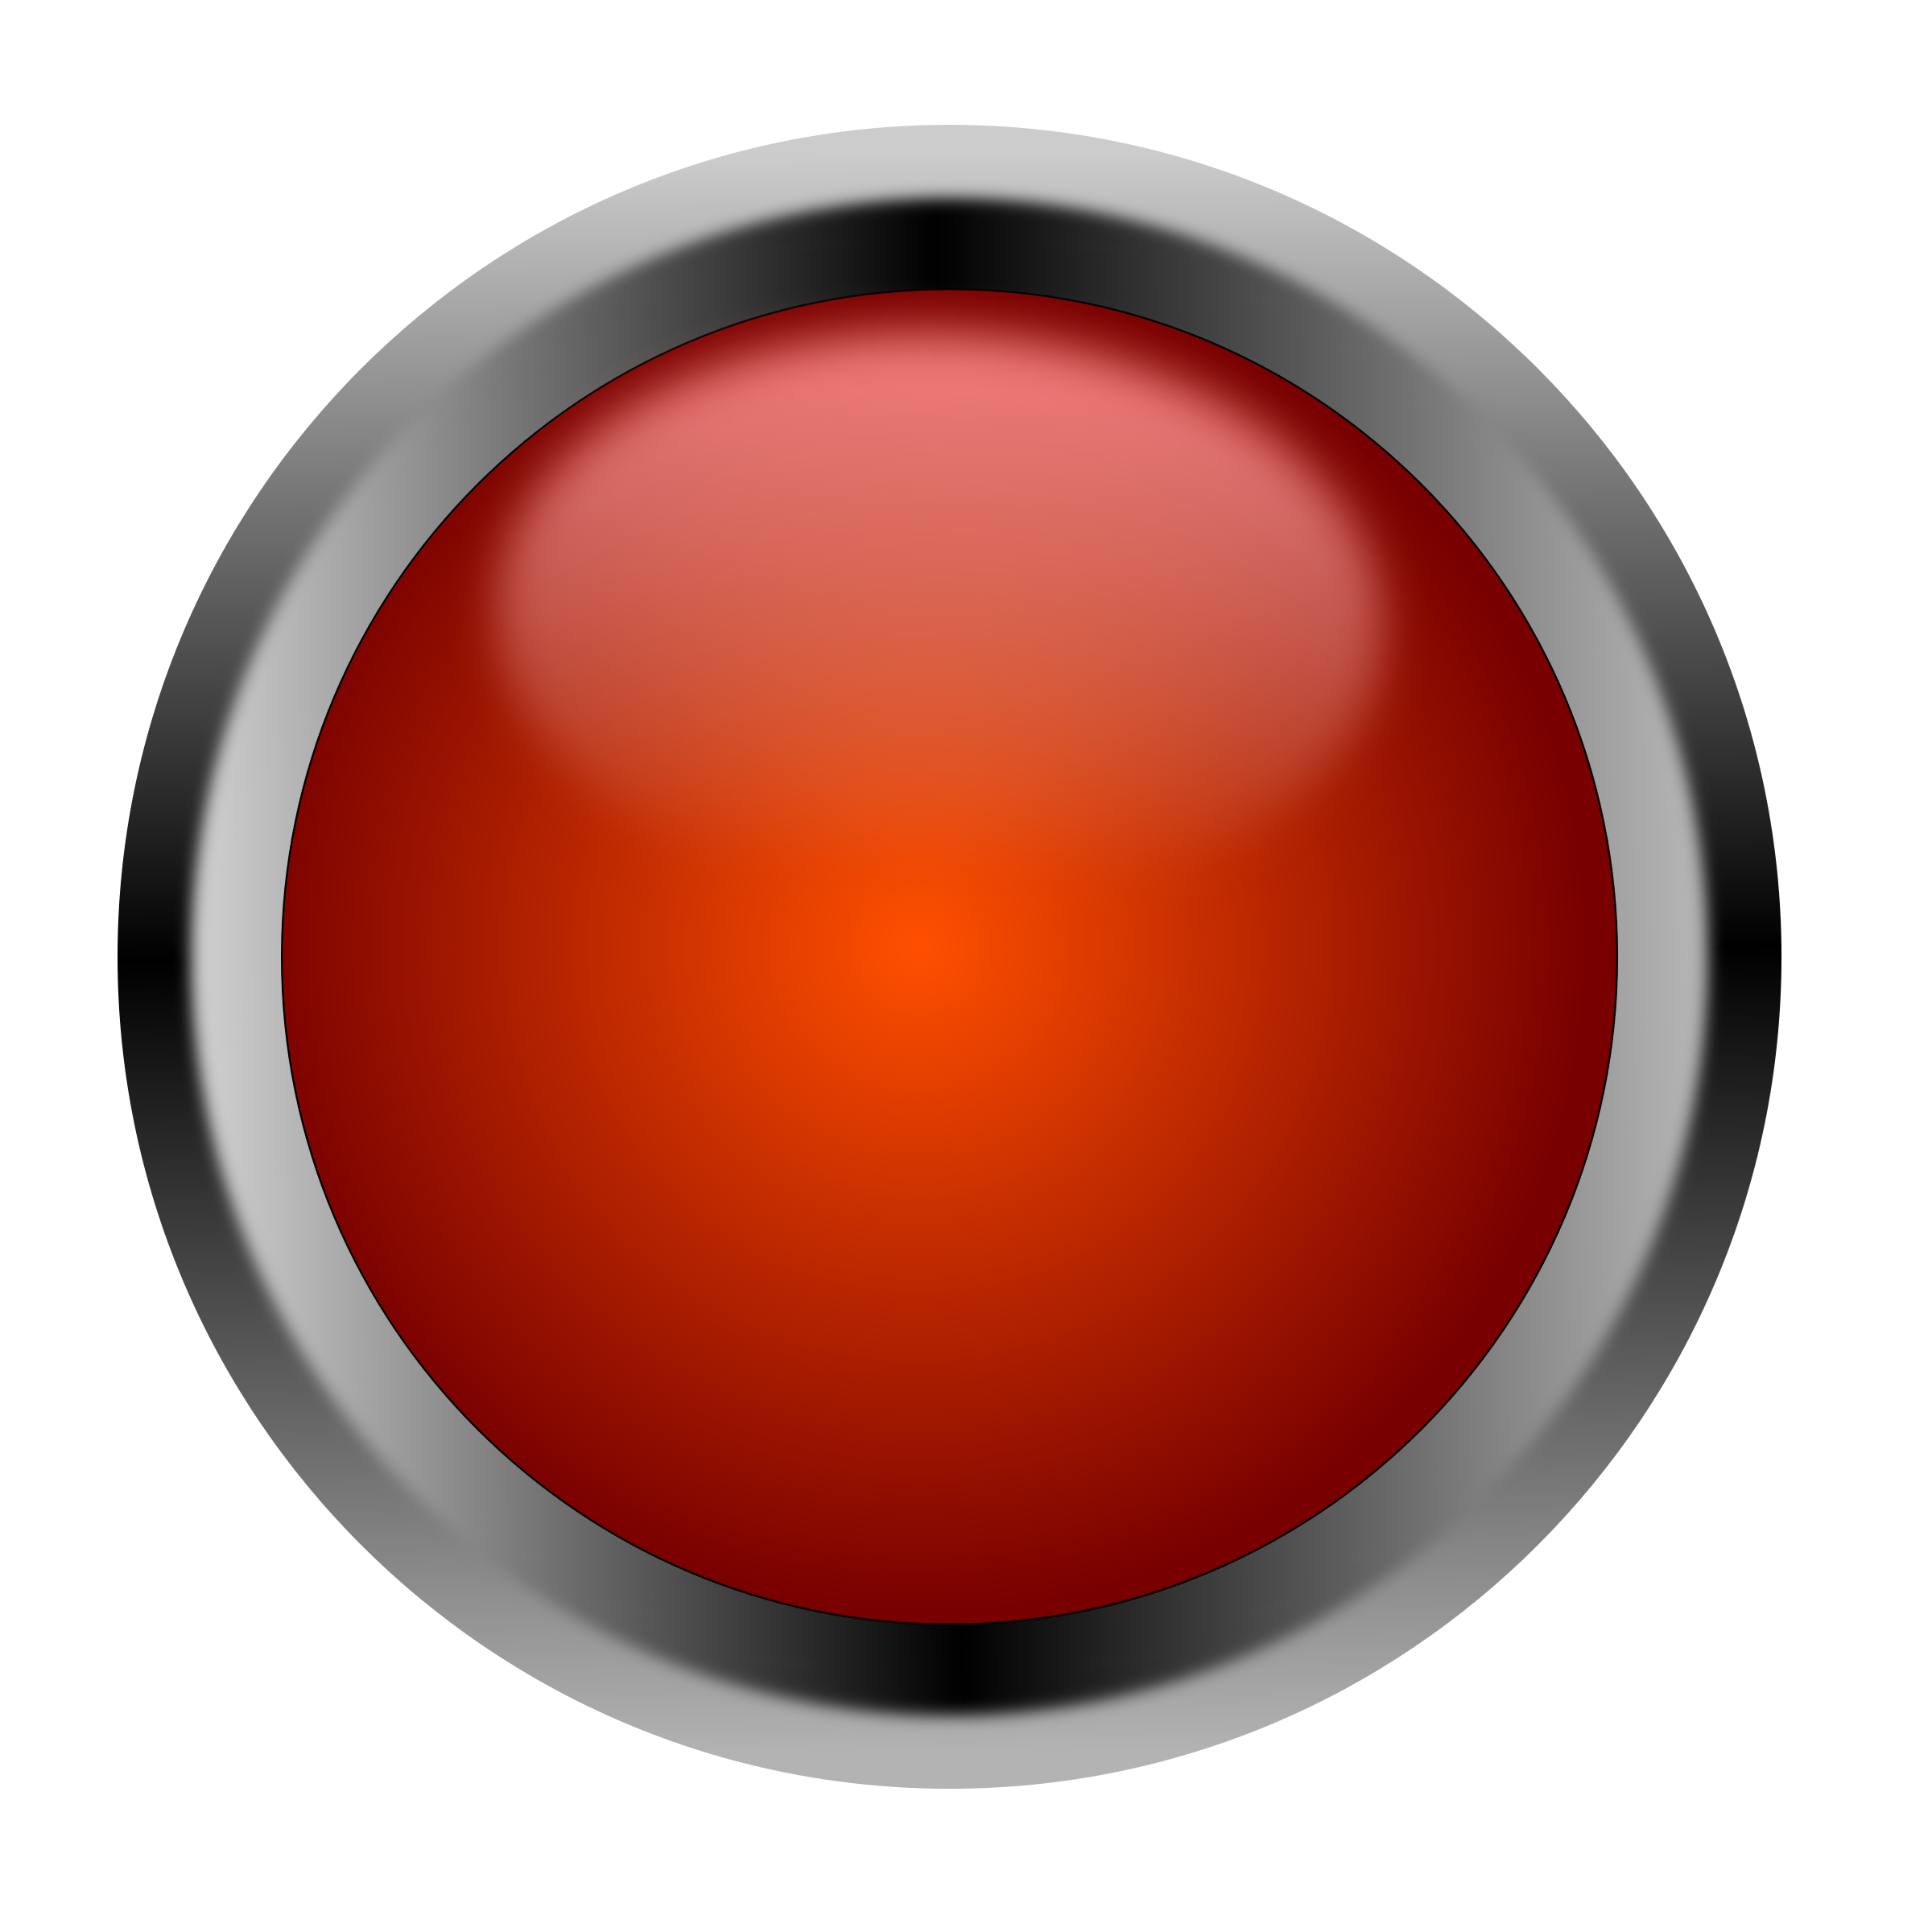 Red Button by cameltech